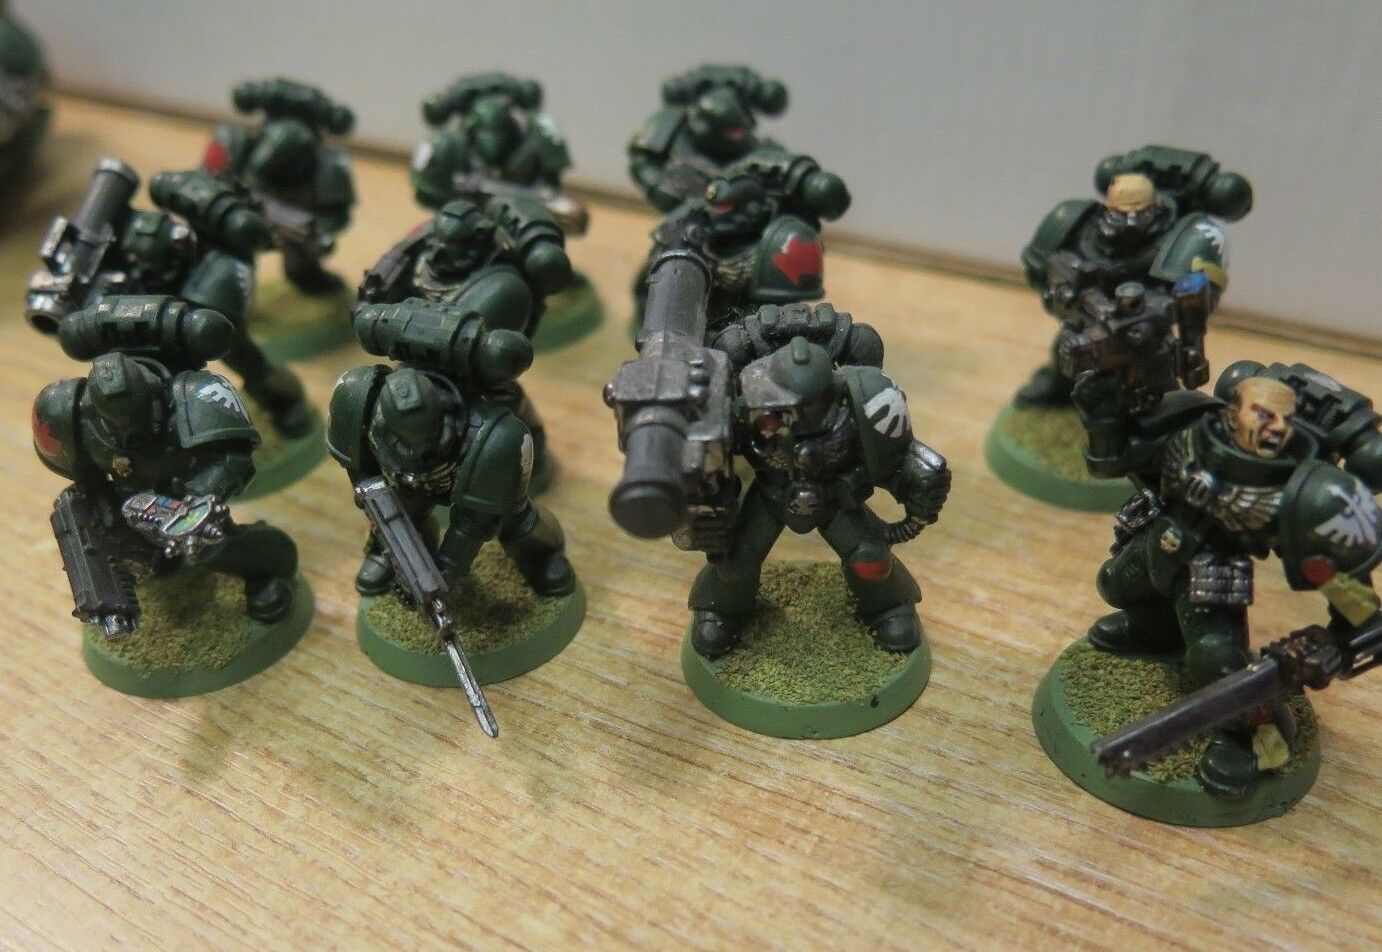 GW WARHAMMER 40K Dark Angels Space Marine Army - Pro-Painted Pro-Painted Pro-Painted 39ea26